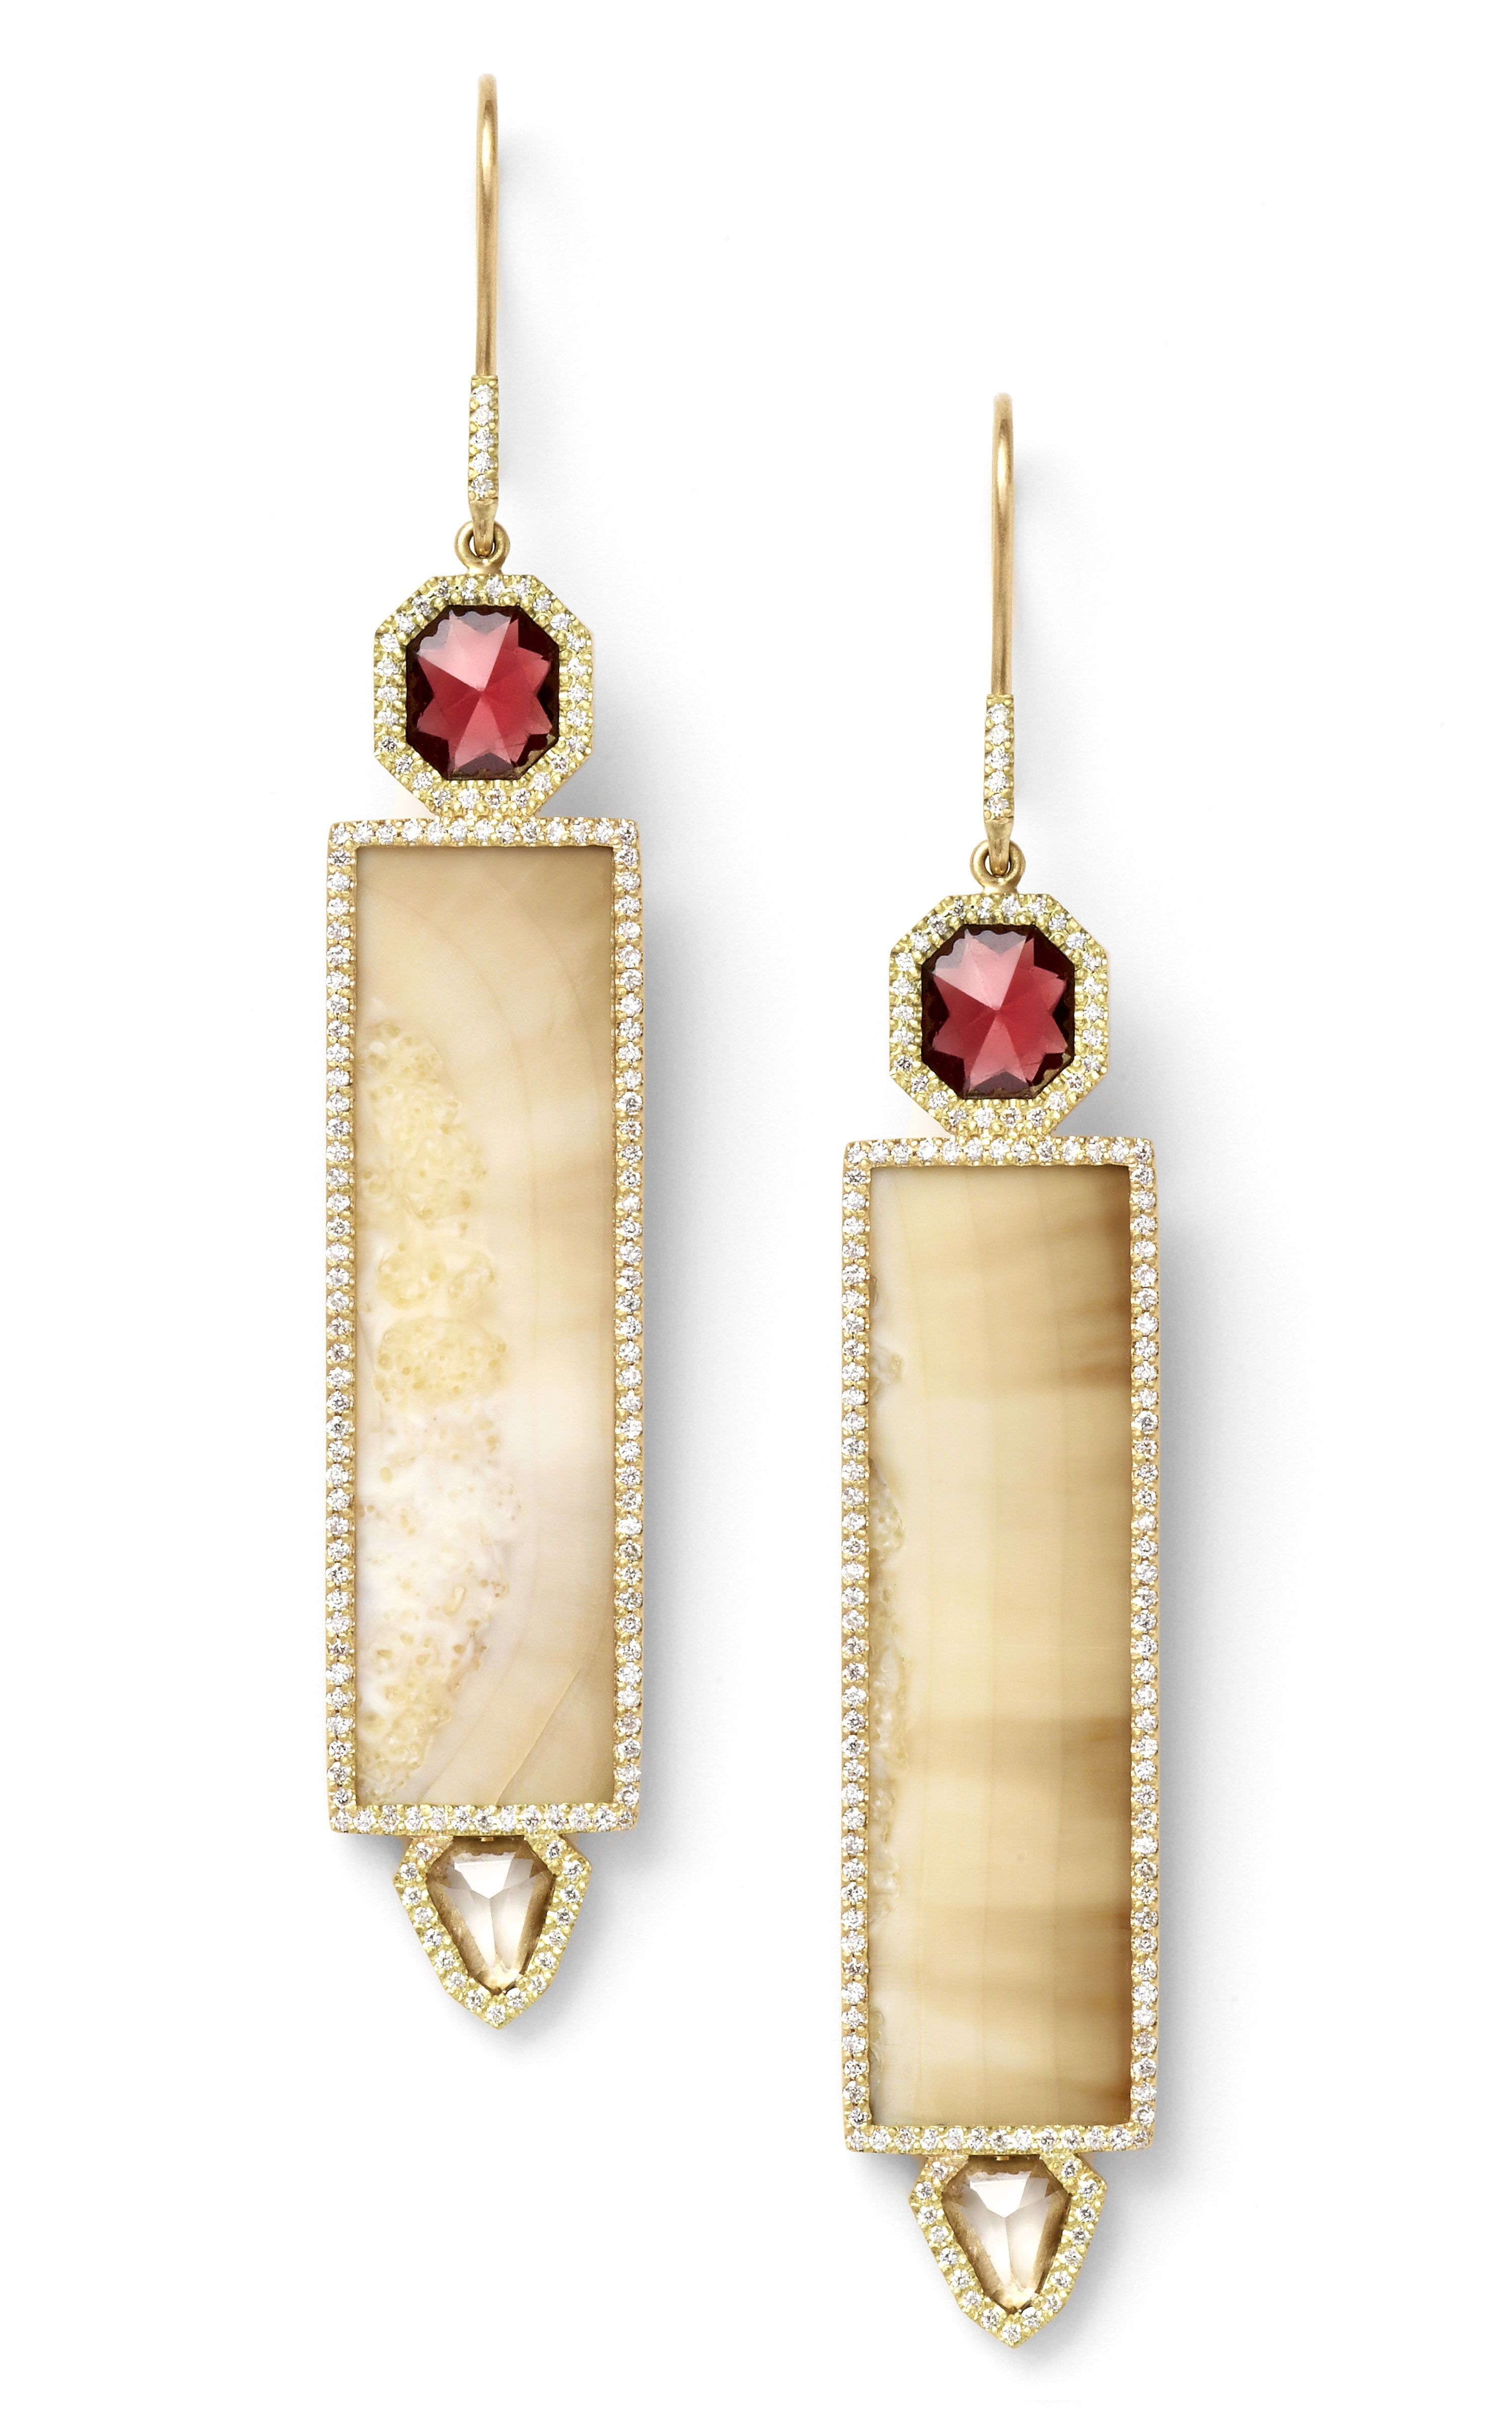 Incredible....Monique Pean Fossilized Walrus Ivory Earrings with Natural Garnet and White Sapphire